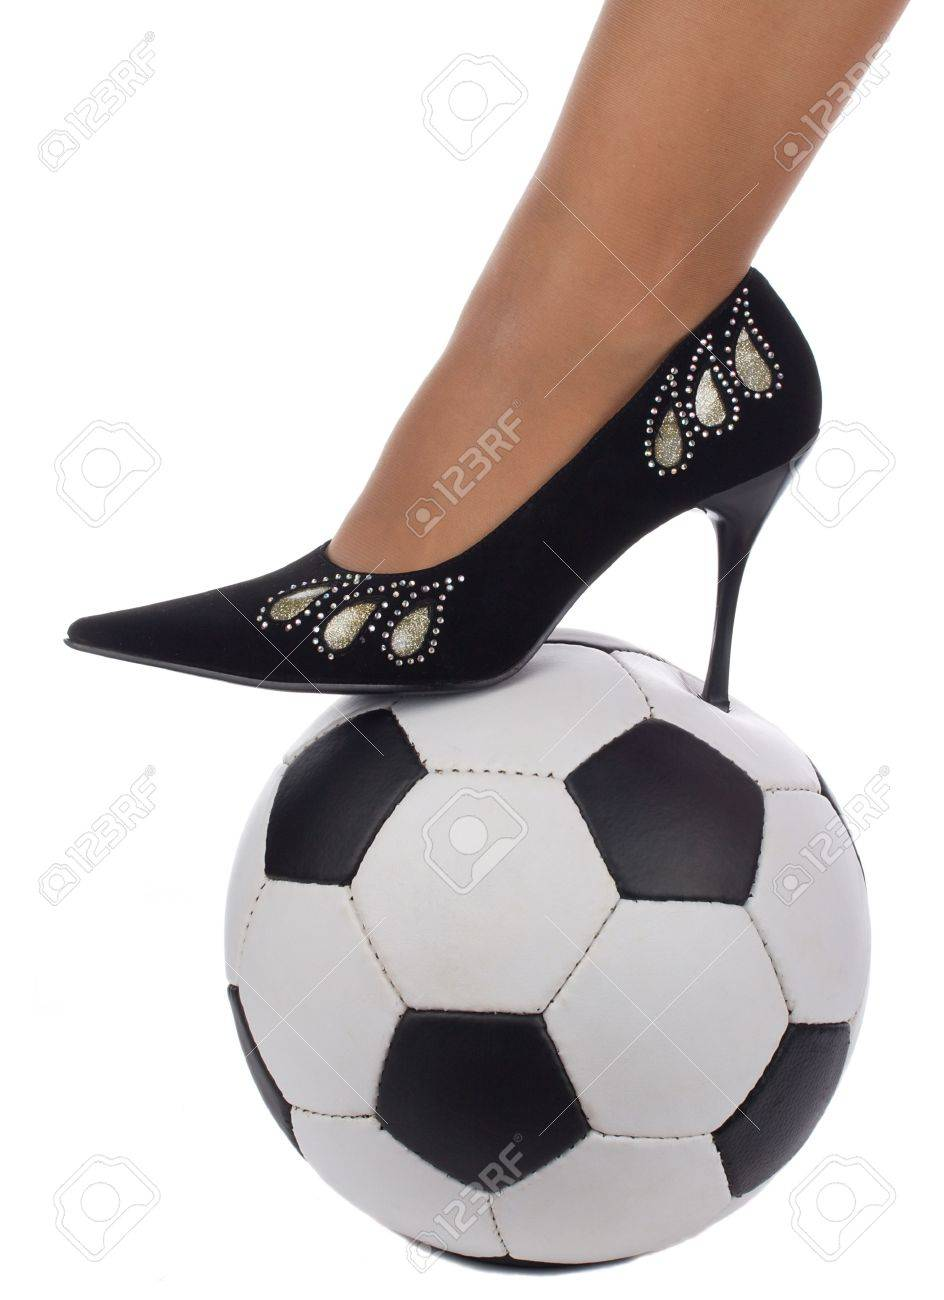 woman foot in high-heeled shoe stand on soccer ball, isolated on white Stock Photo - 3891346